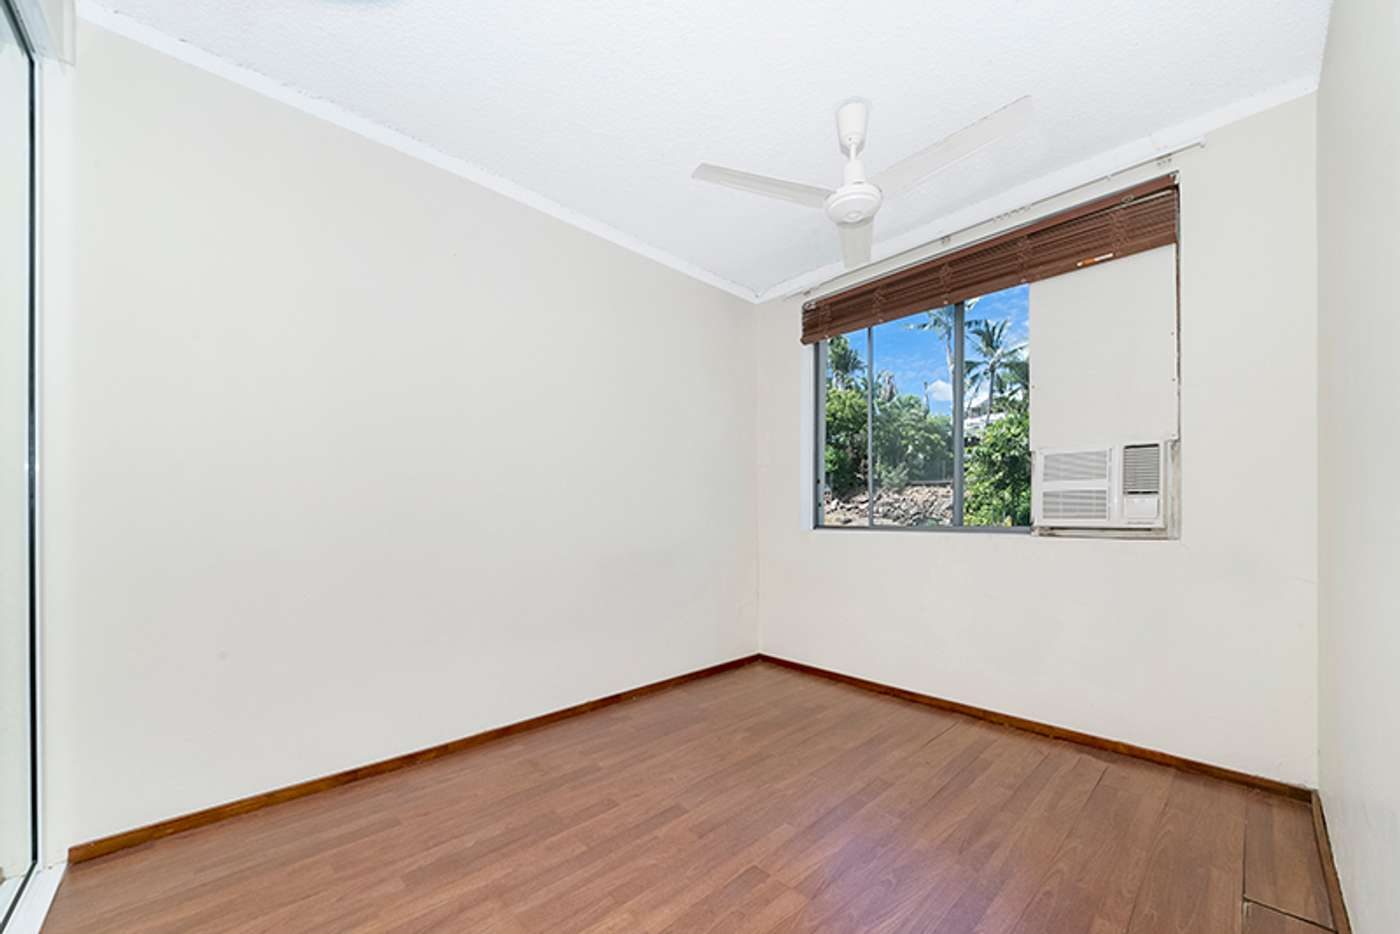 Sixth view of Homely unit listing, Address available on request